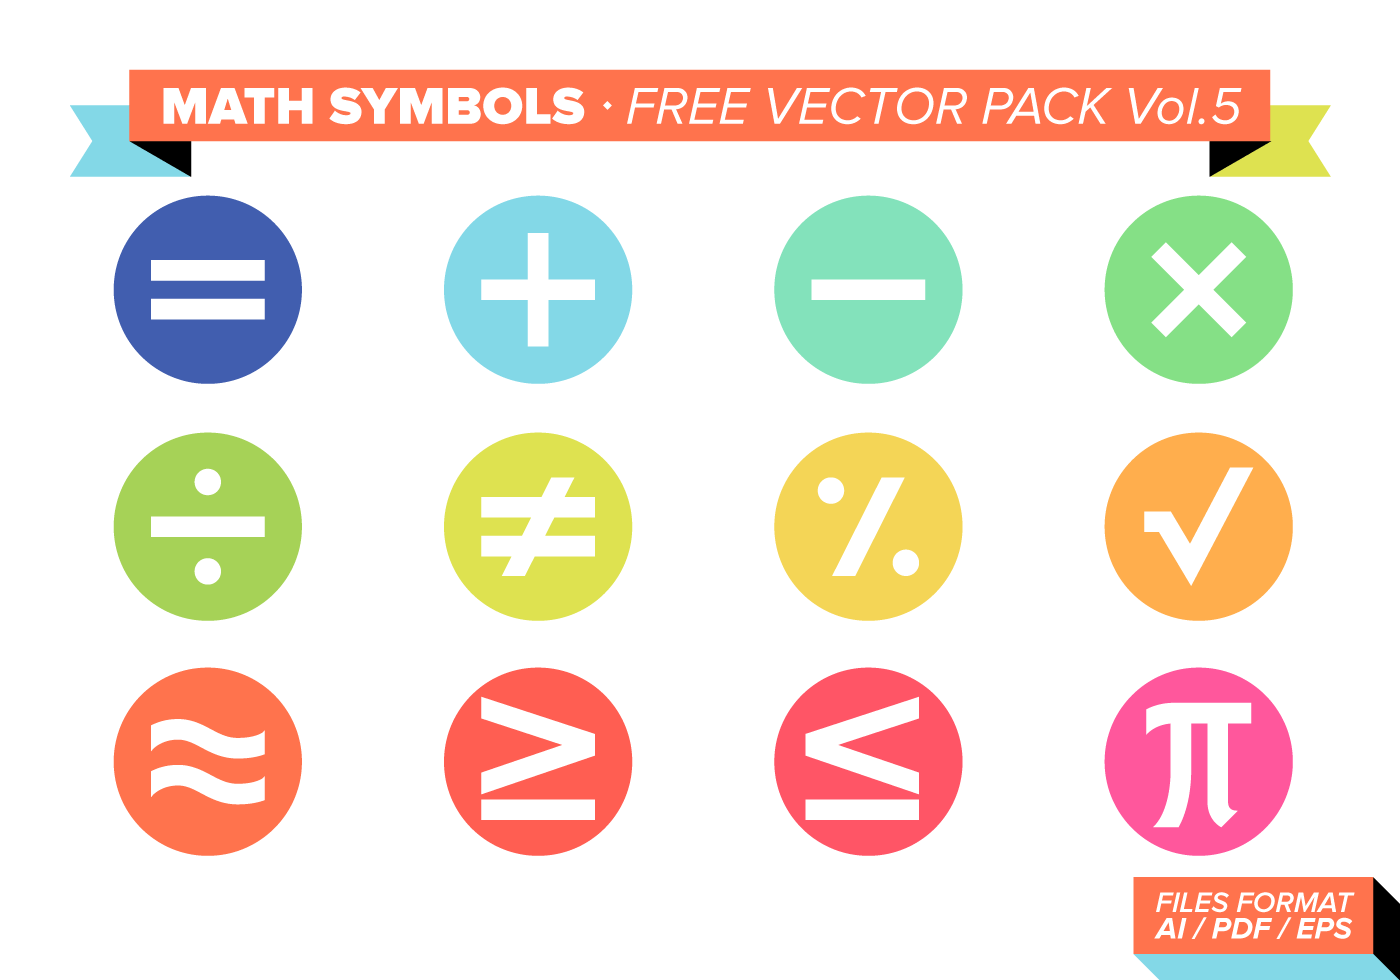 Math Symbols Free Vector Pack Vol 5